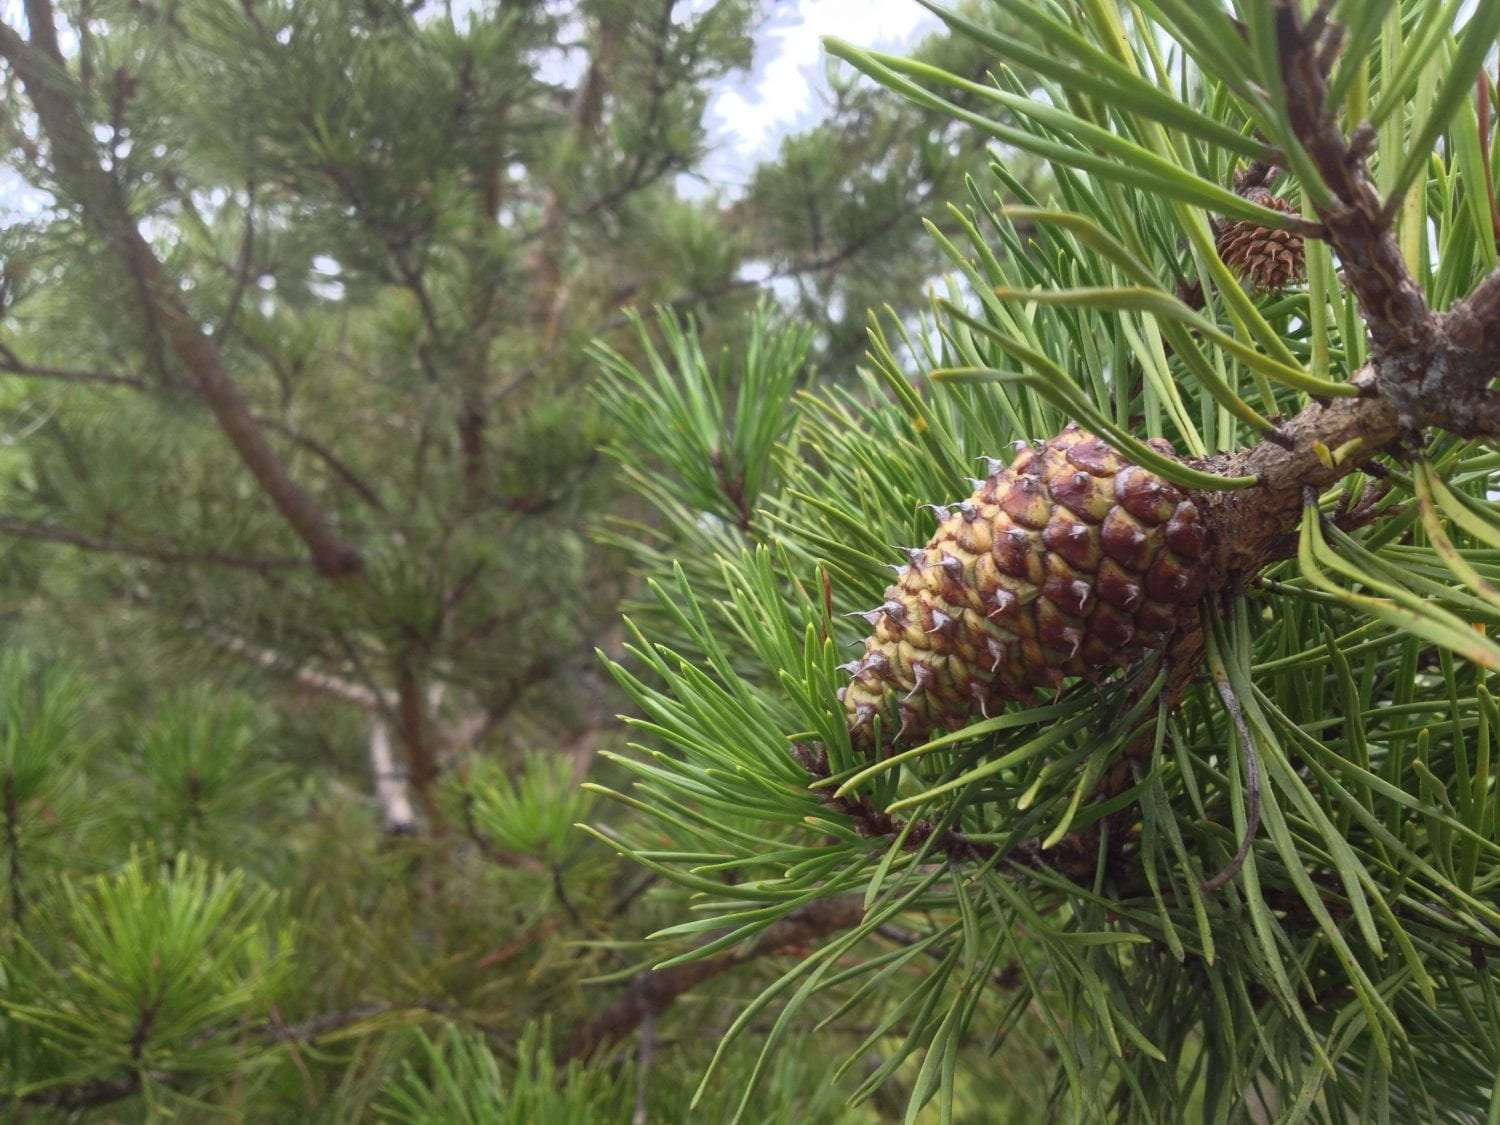 A Virginia pine cone, bristled and still closed on the tree